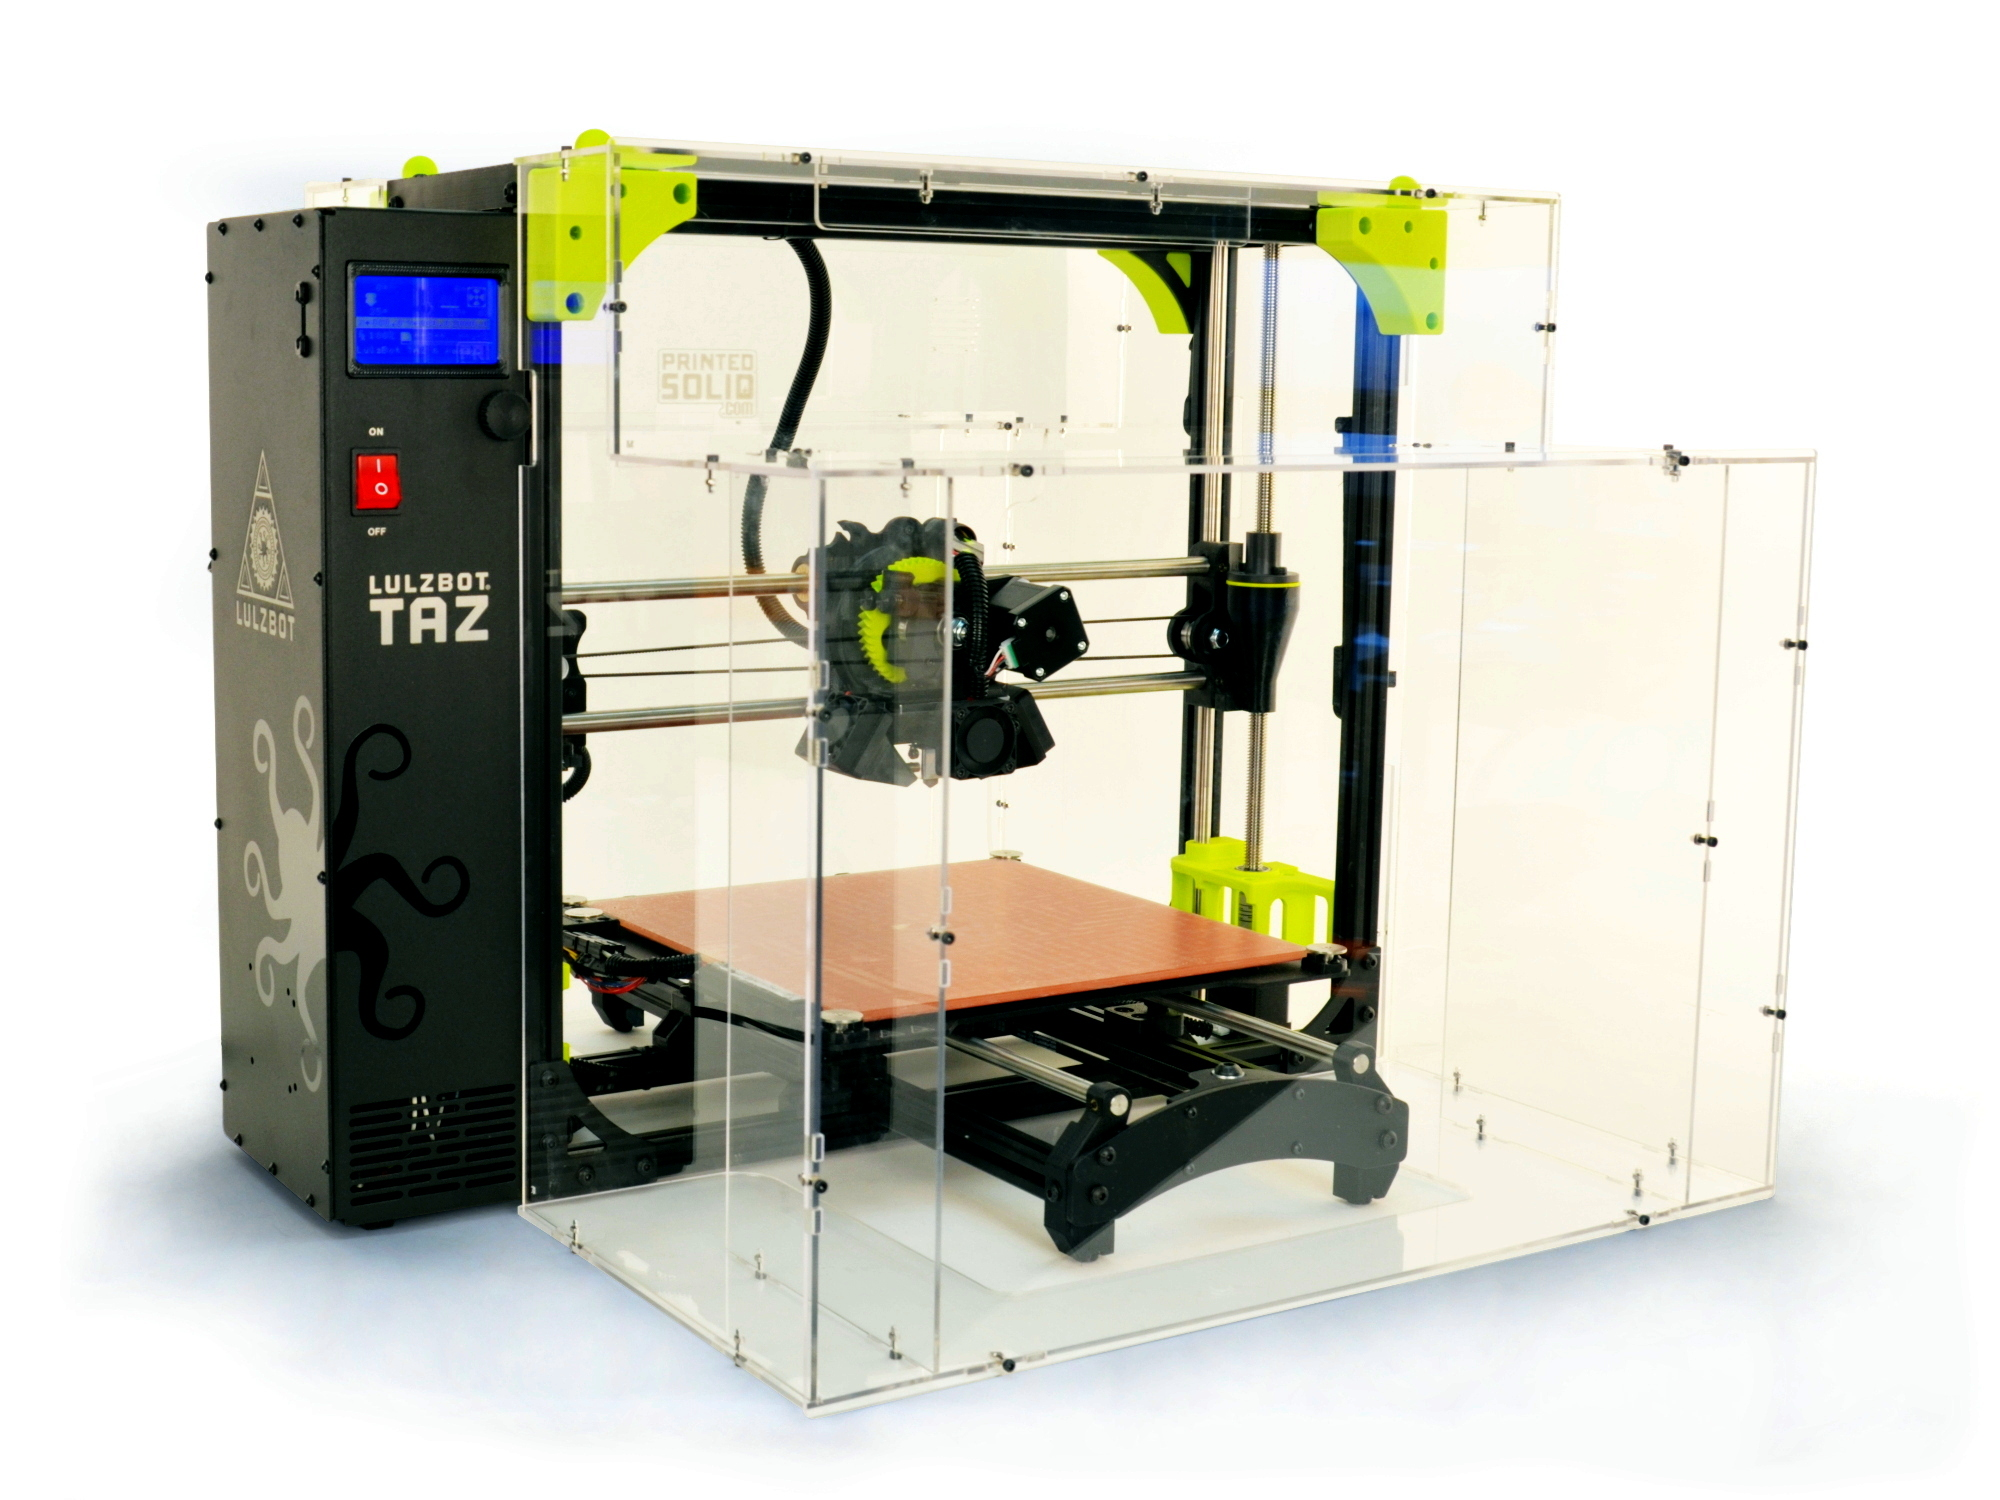 The LulzBot TAZ 6 enclosure. Image via LulzBot.